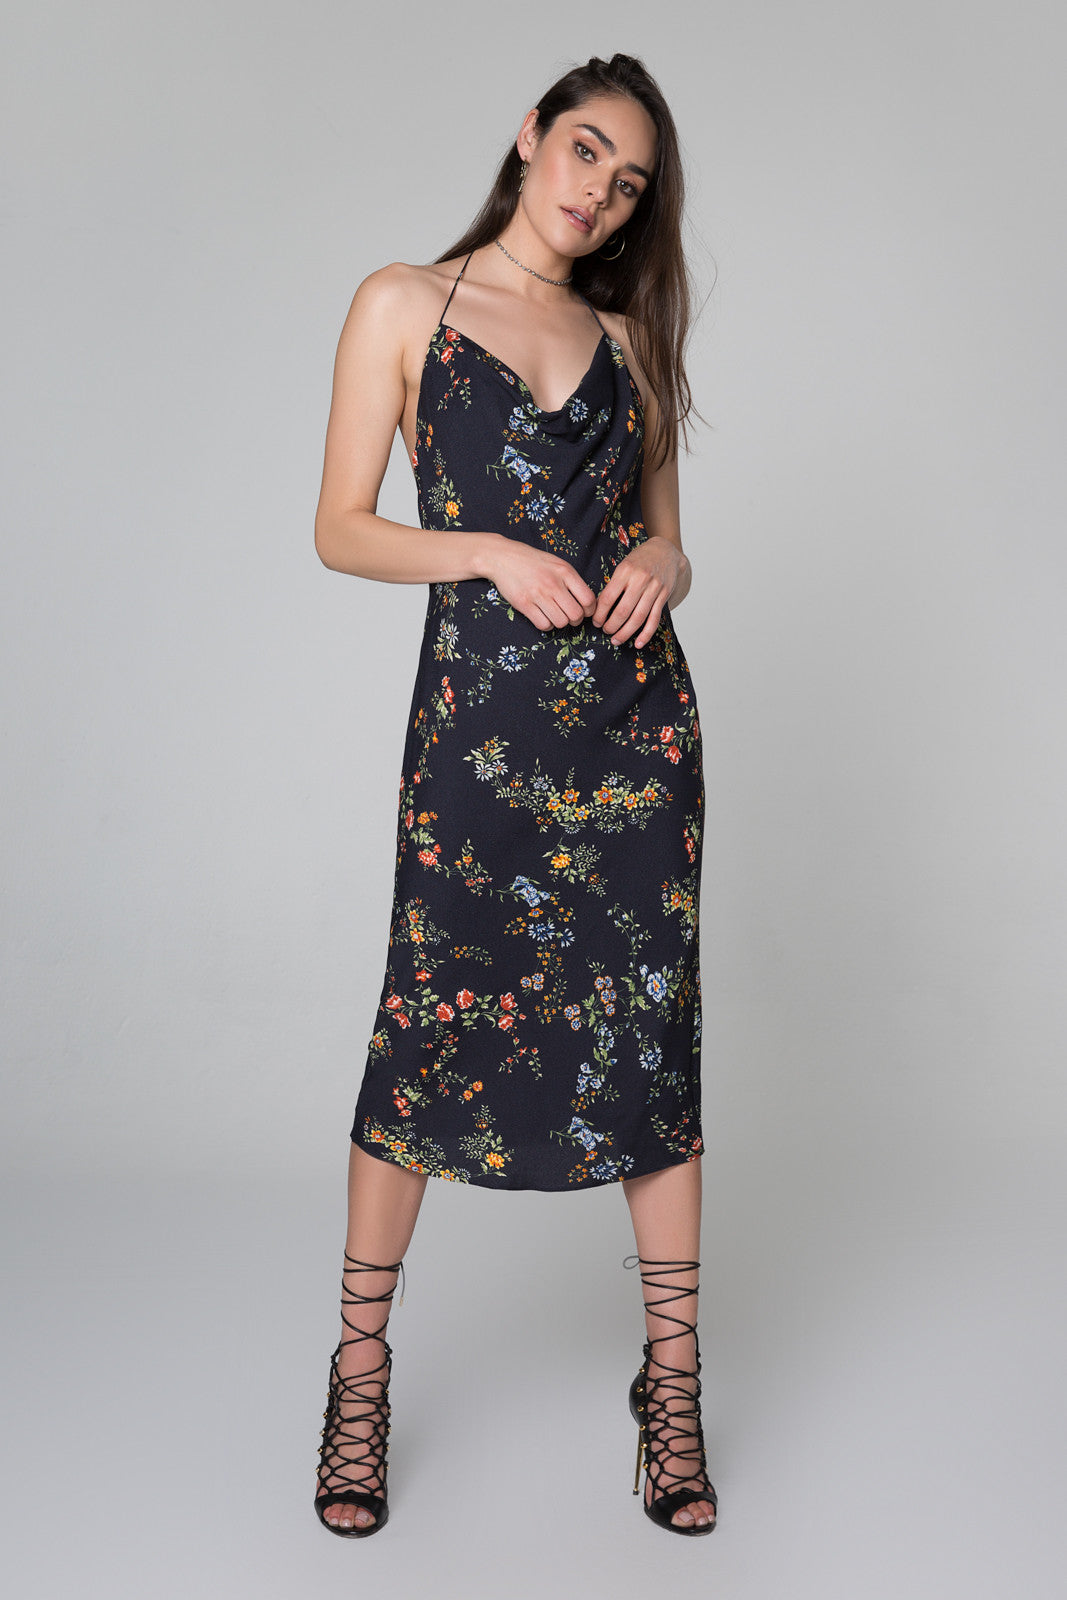 Rowland Halter Midi Dress